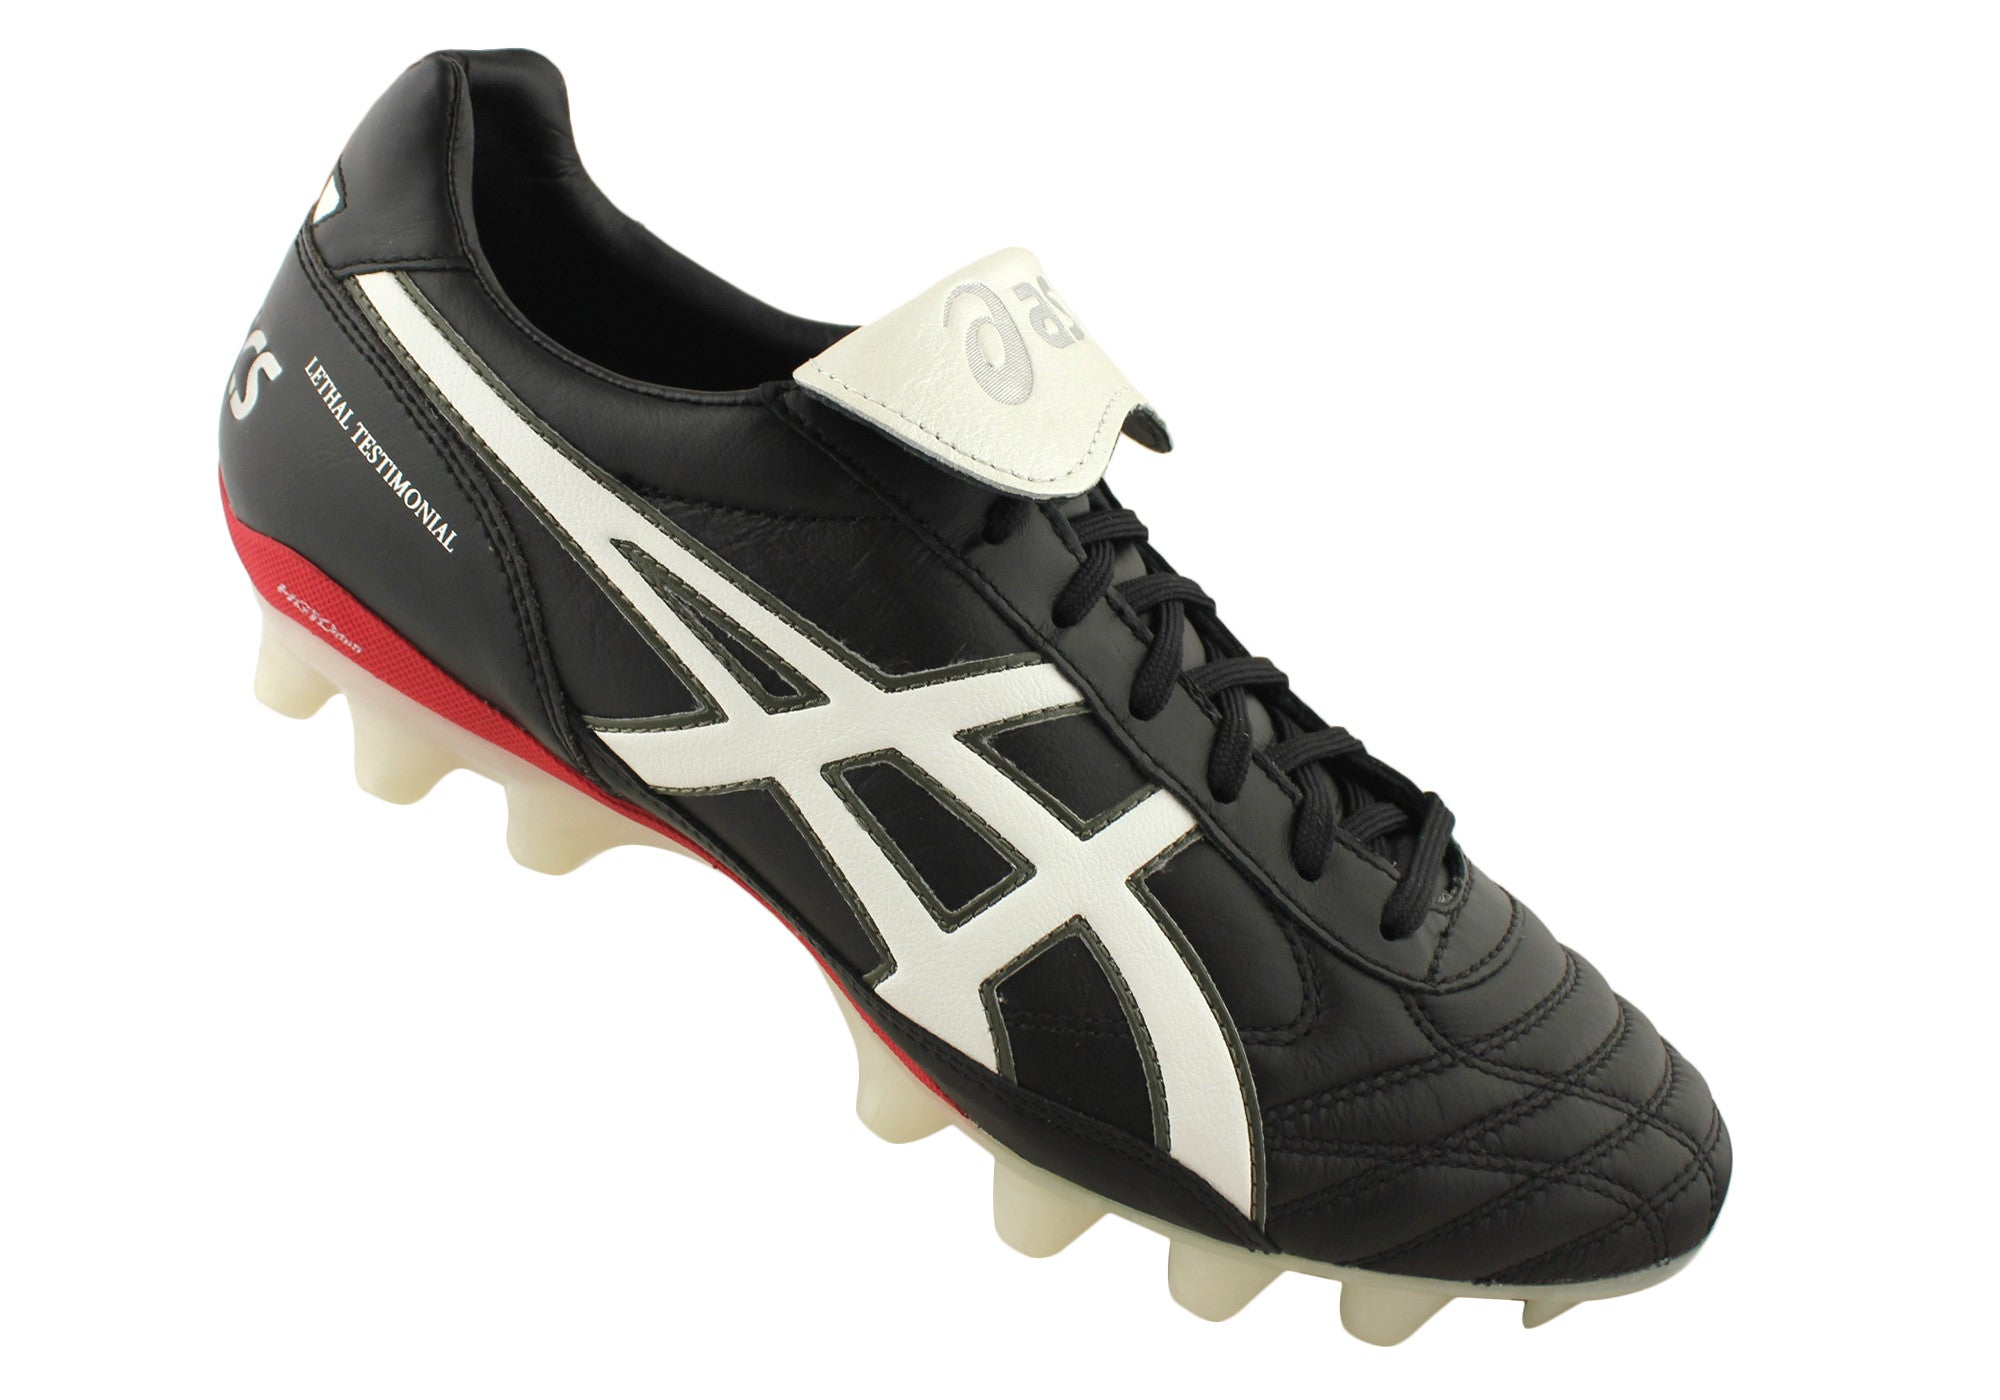 Asics Lethal Testimonial 2 IT Mens Football/Soccer Boots